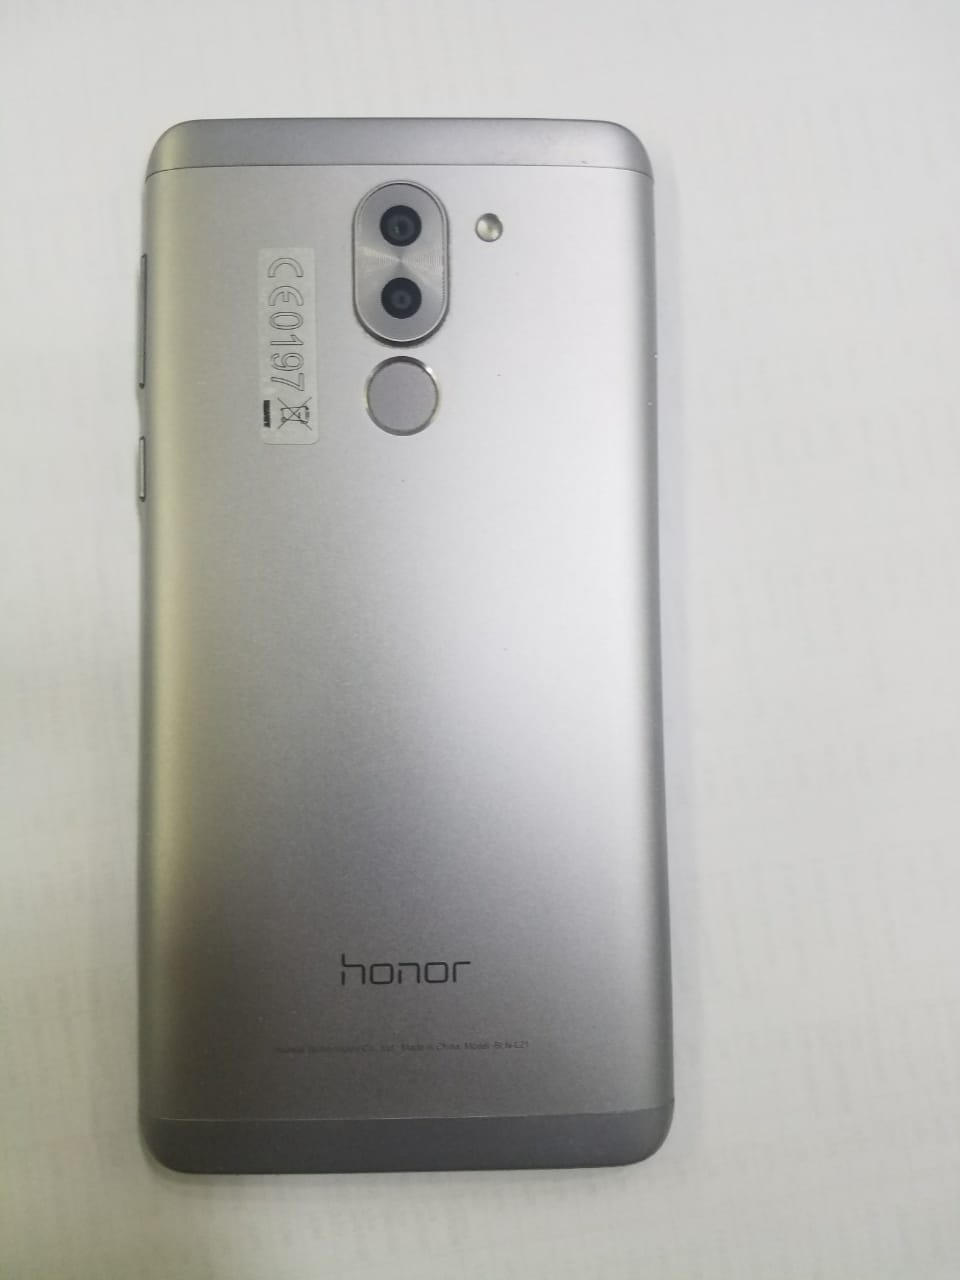 honor 6x gaurnteed non repaired condition 10/10 - photo 2